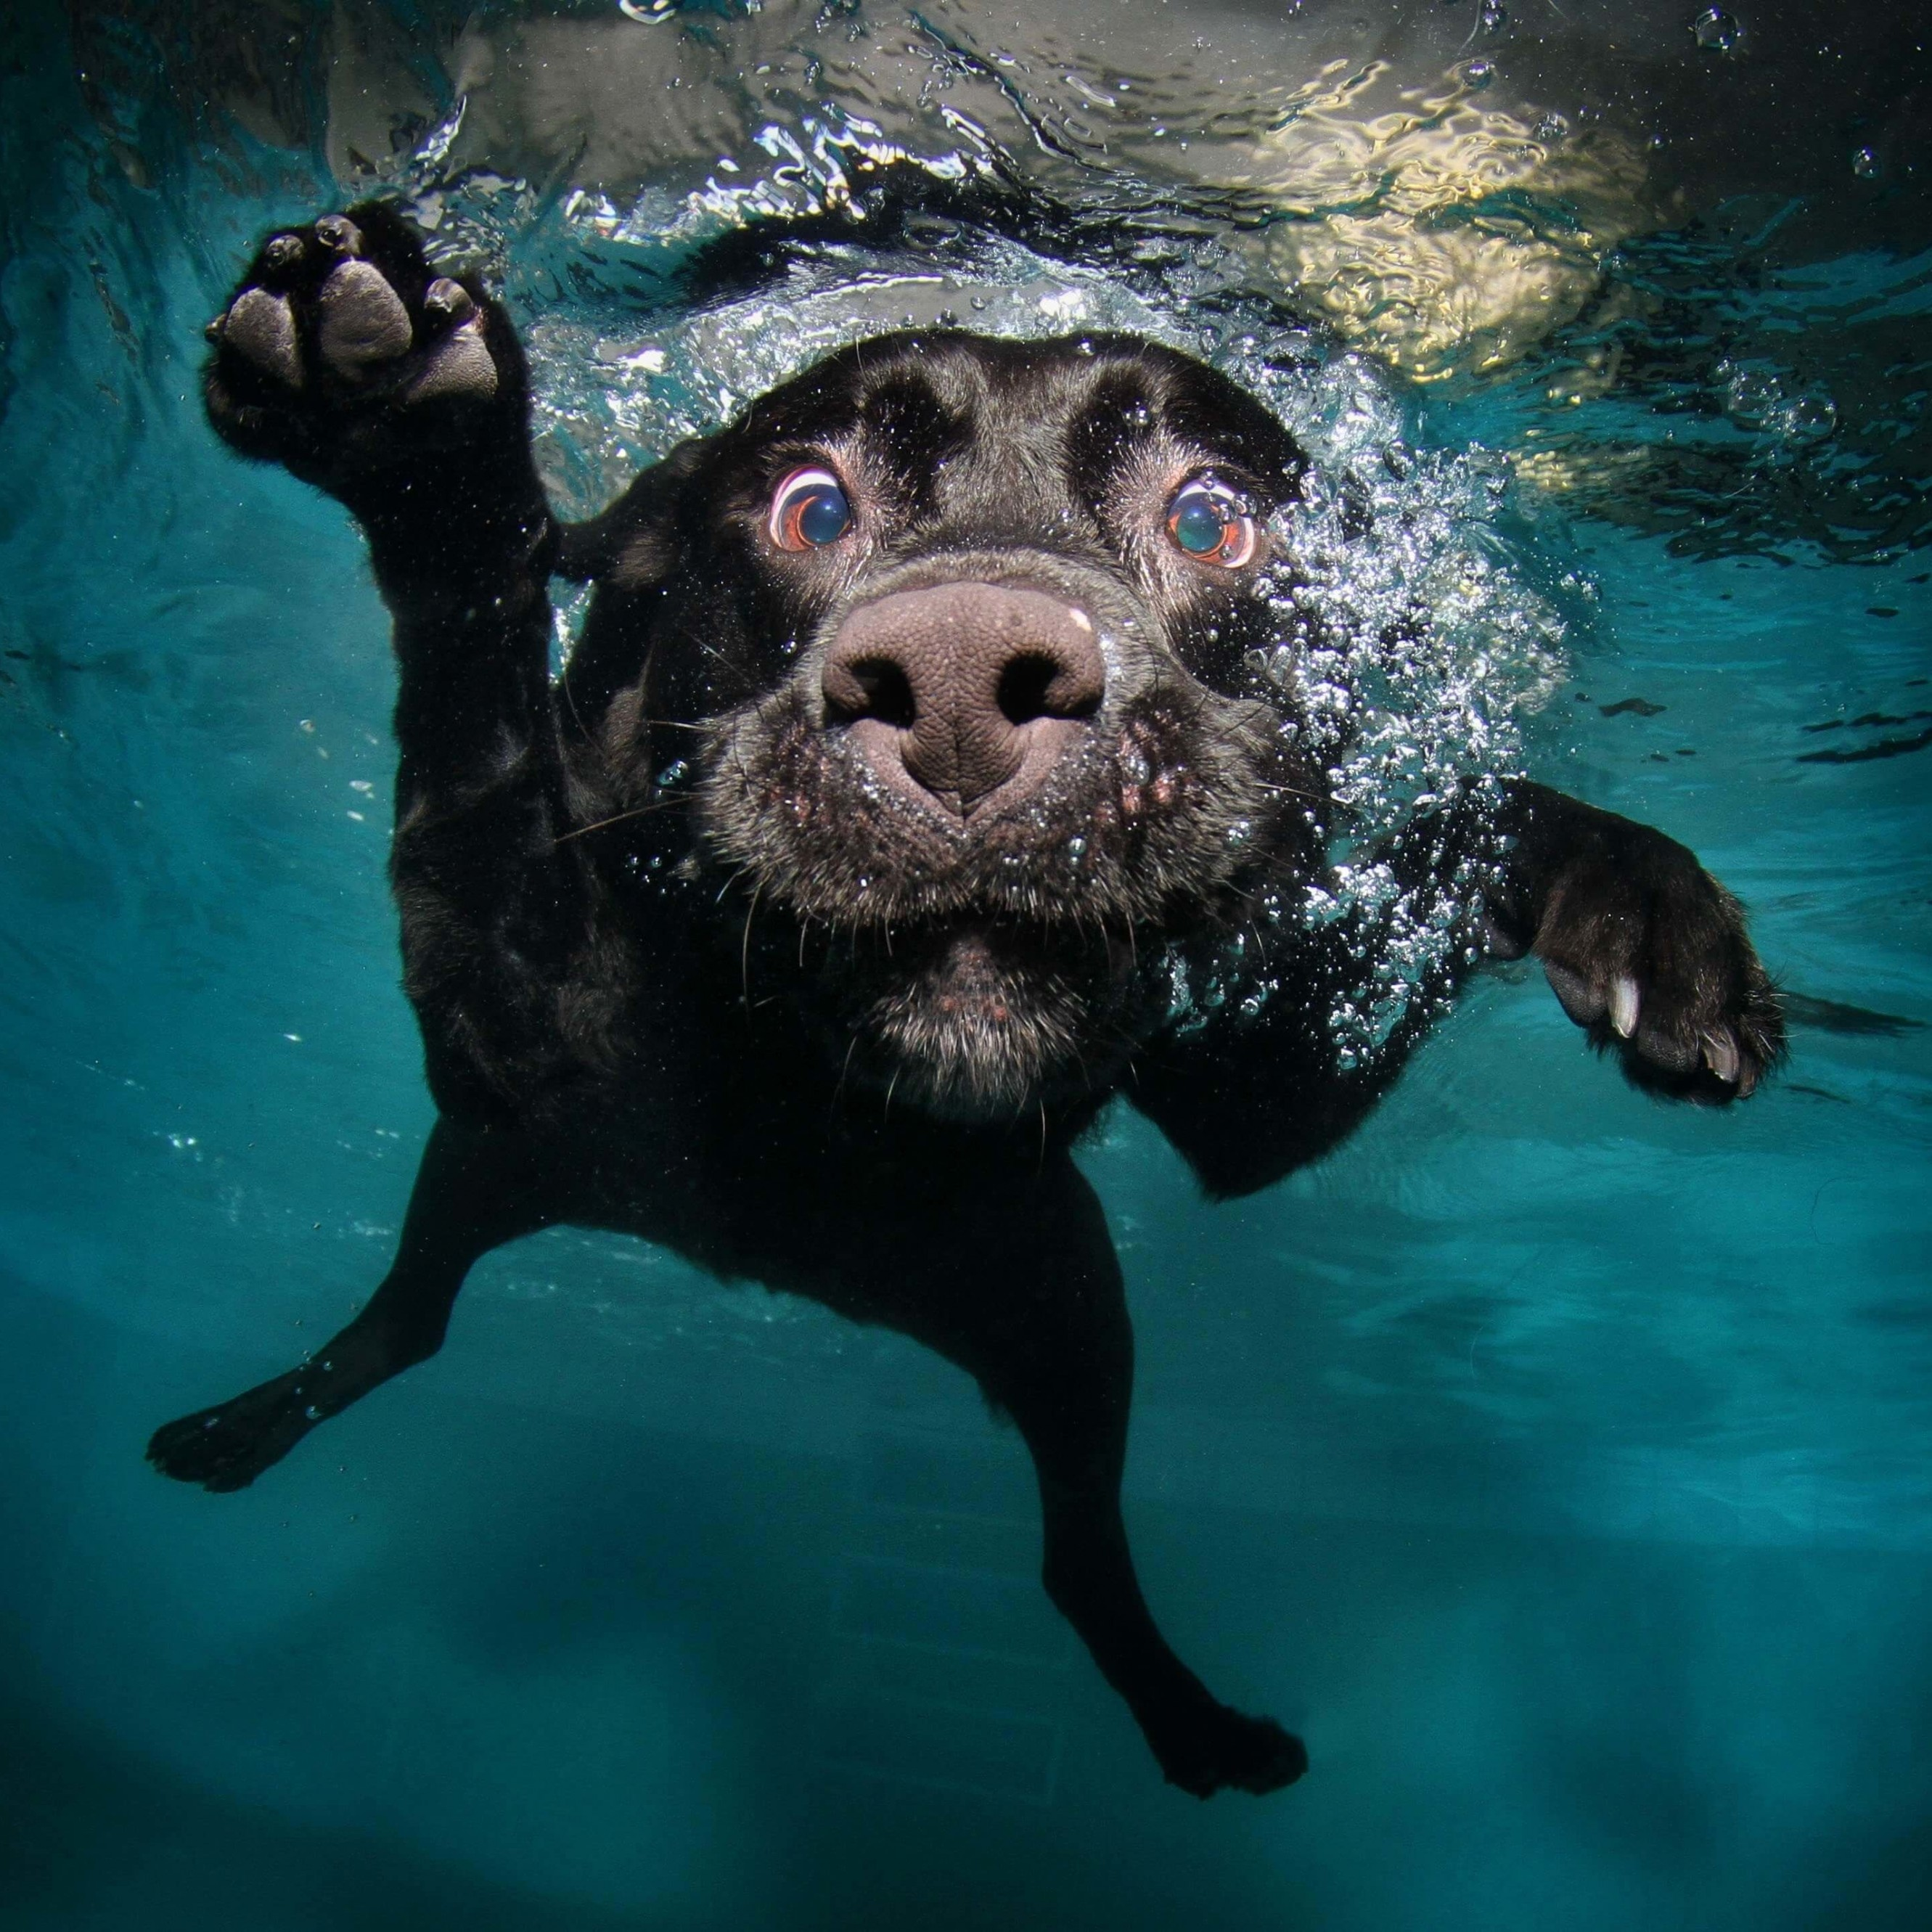 Underwater Dog Wallpaper for Apple iPhone 6 Plus